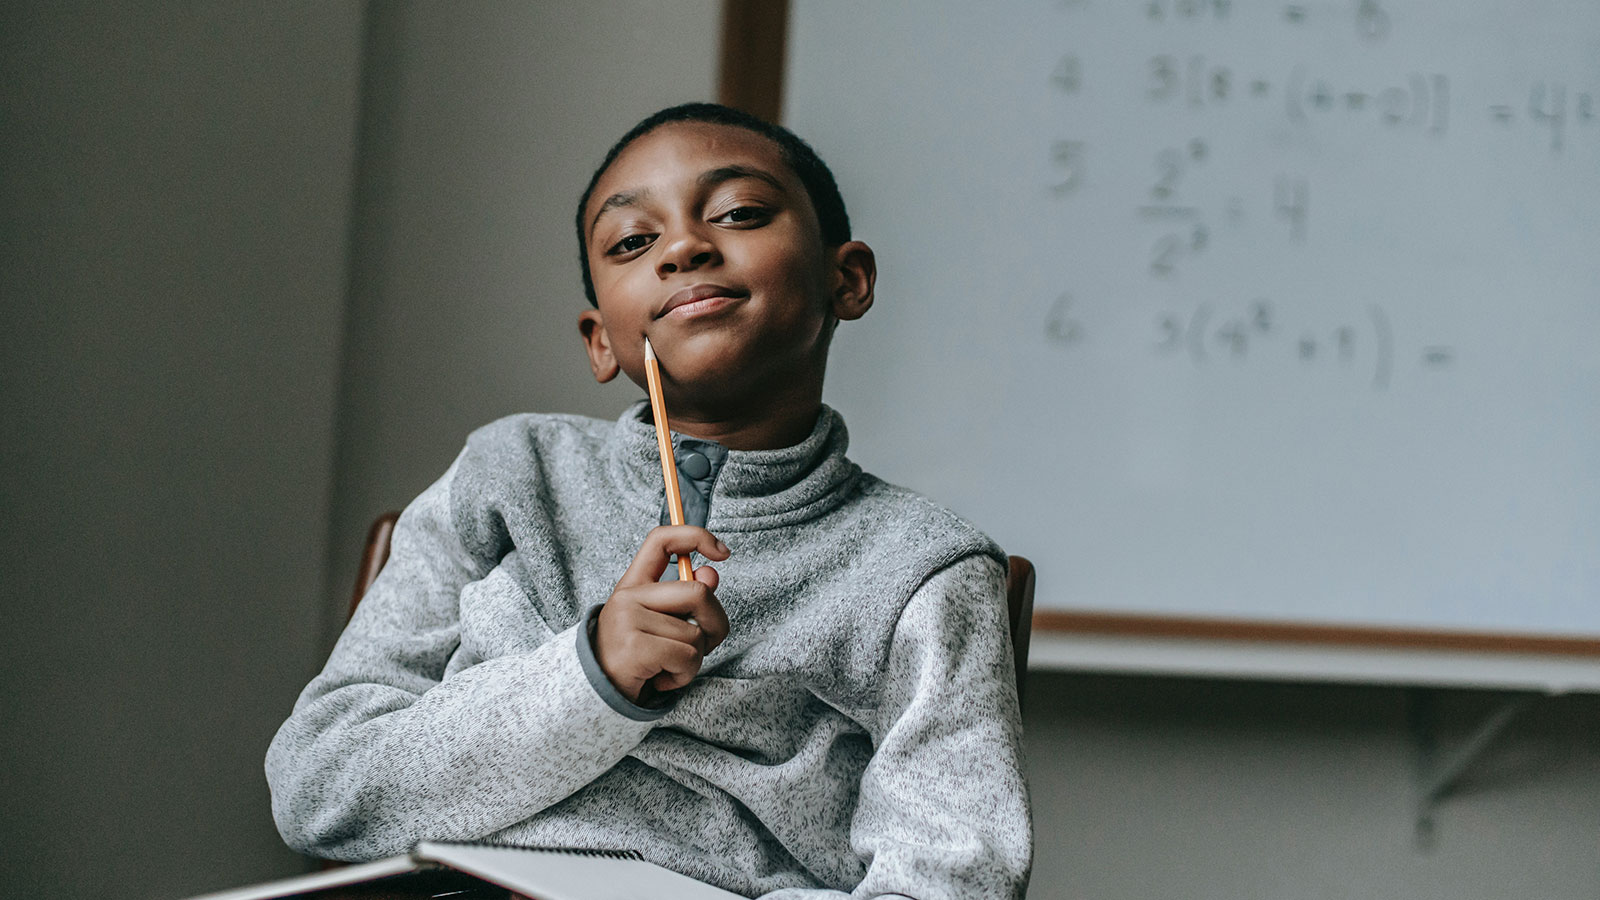 Thoughtful boy with pencil